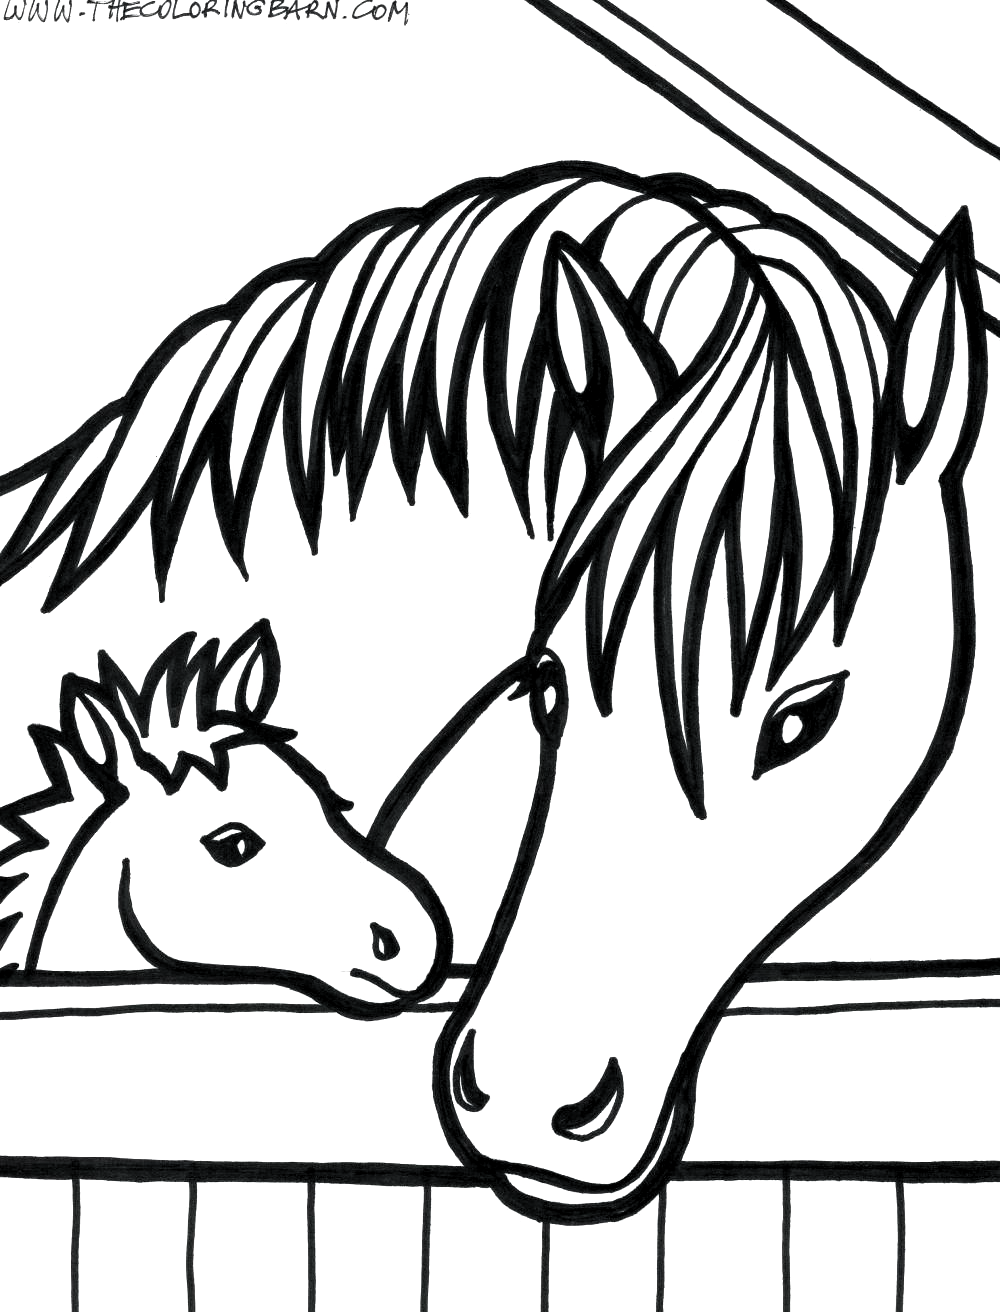 Baby Horse Coloring Pages For Kids Baby Horse Coloring Pages For Kids Unicorn Coloring Pages Baby Horse Co In 2020 Horse Coloring Pages Horse Coloring Coloring Pages